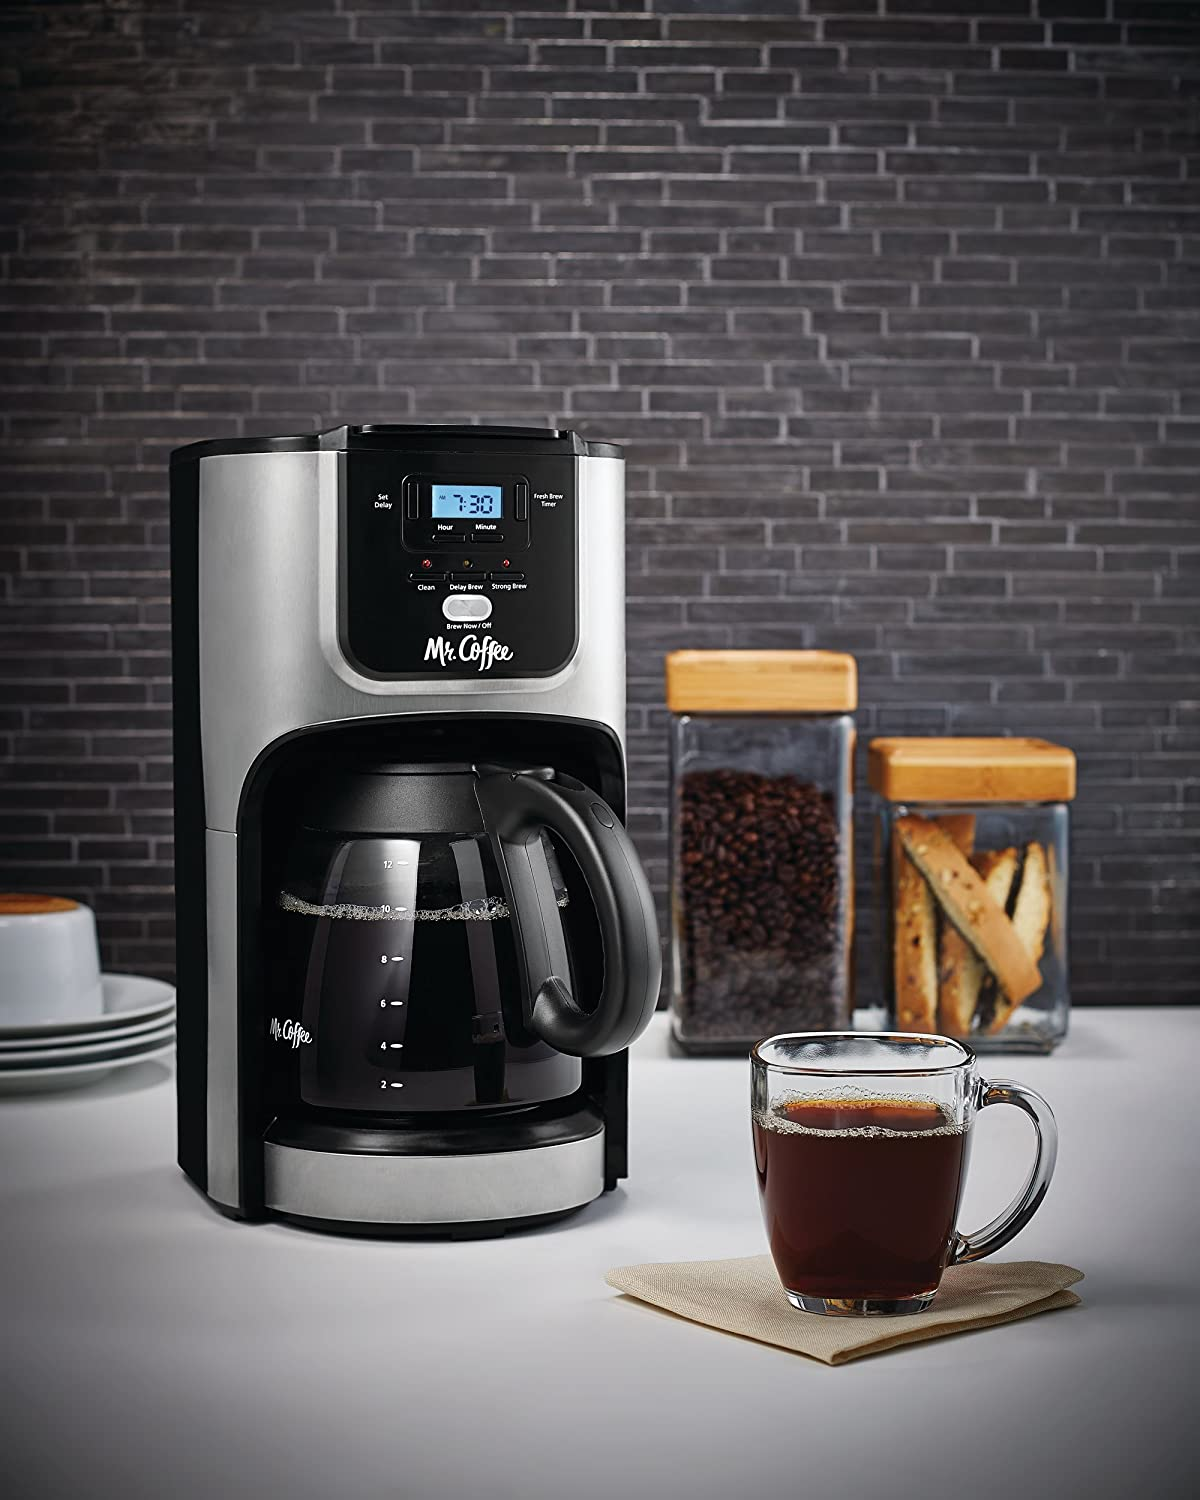 ghdonat.com Mr Coffee 12-Cup Programmable Coffee Maker with Brew ...